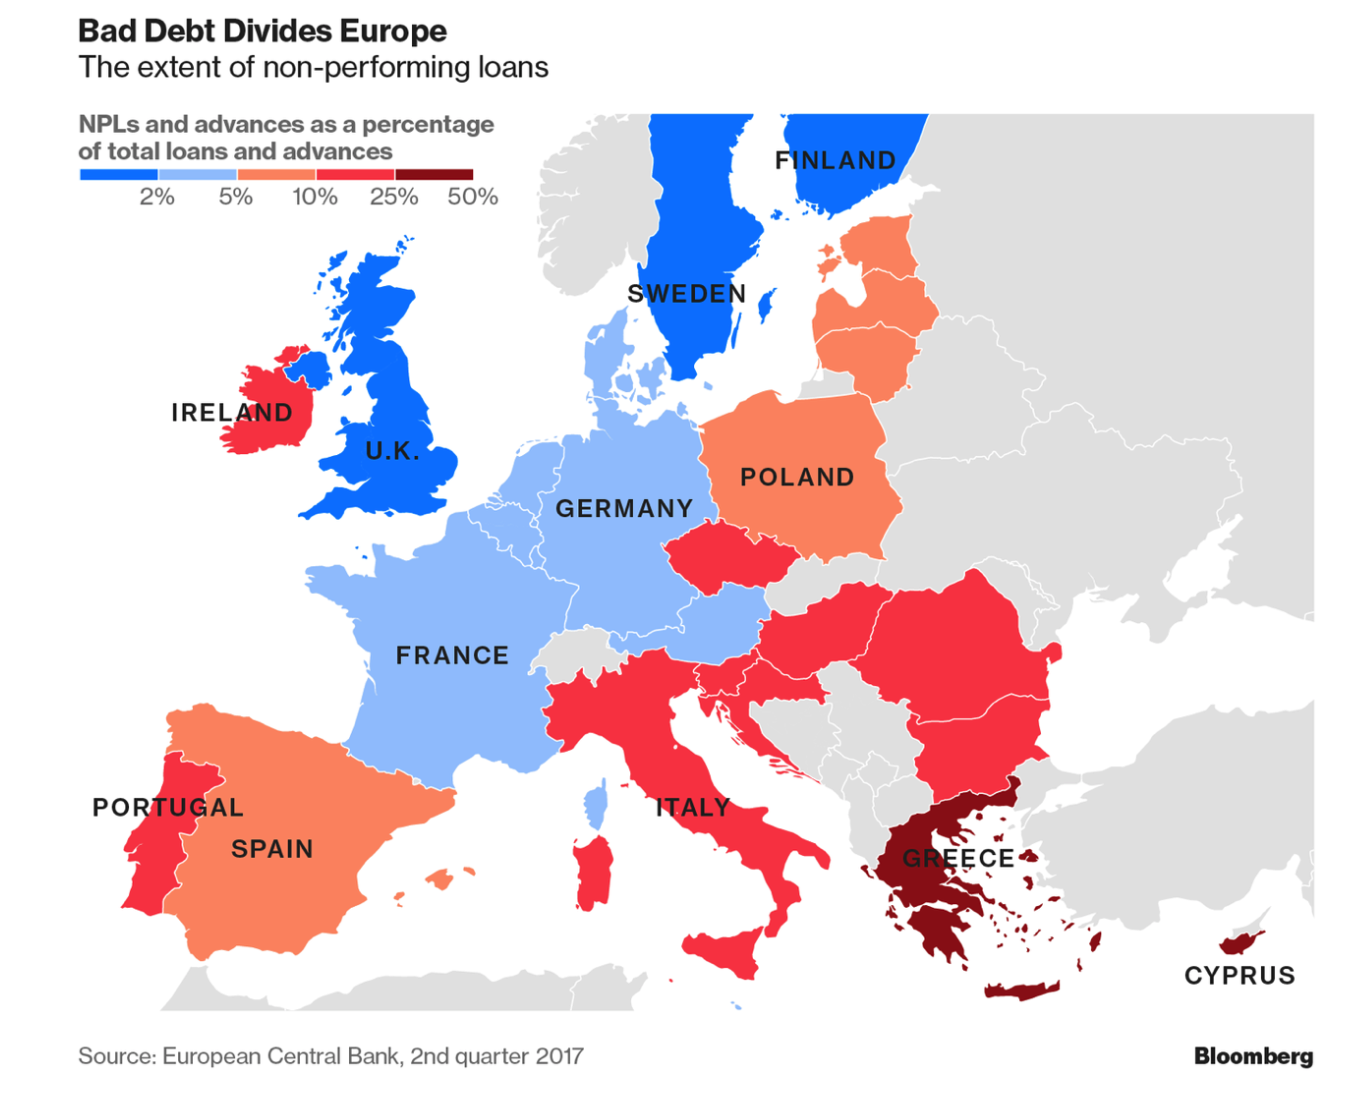 Bank Bail In Risk In European Countries Seen In 5 Key Charts